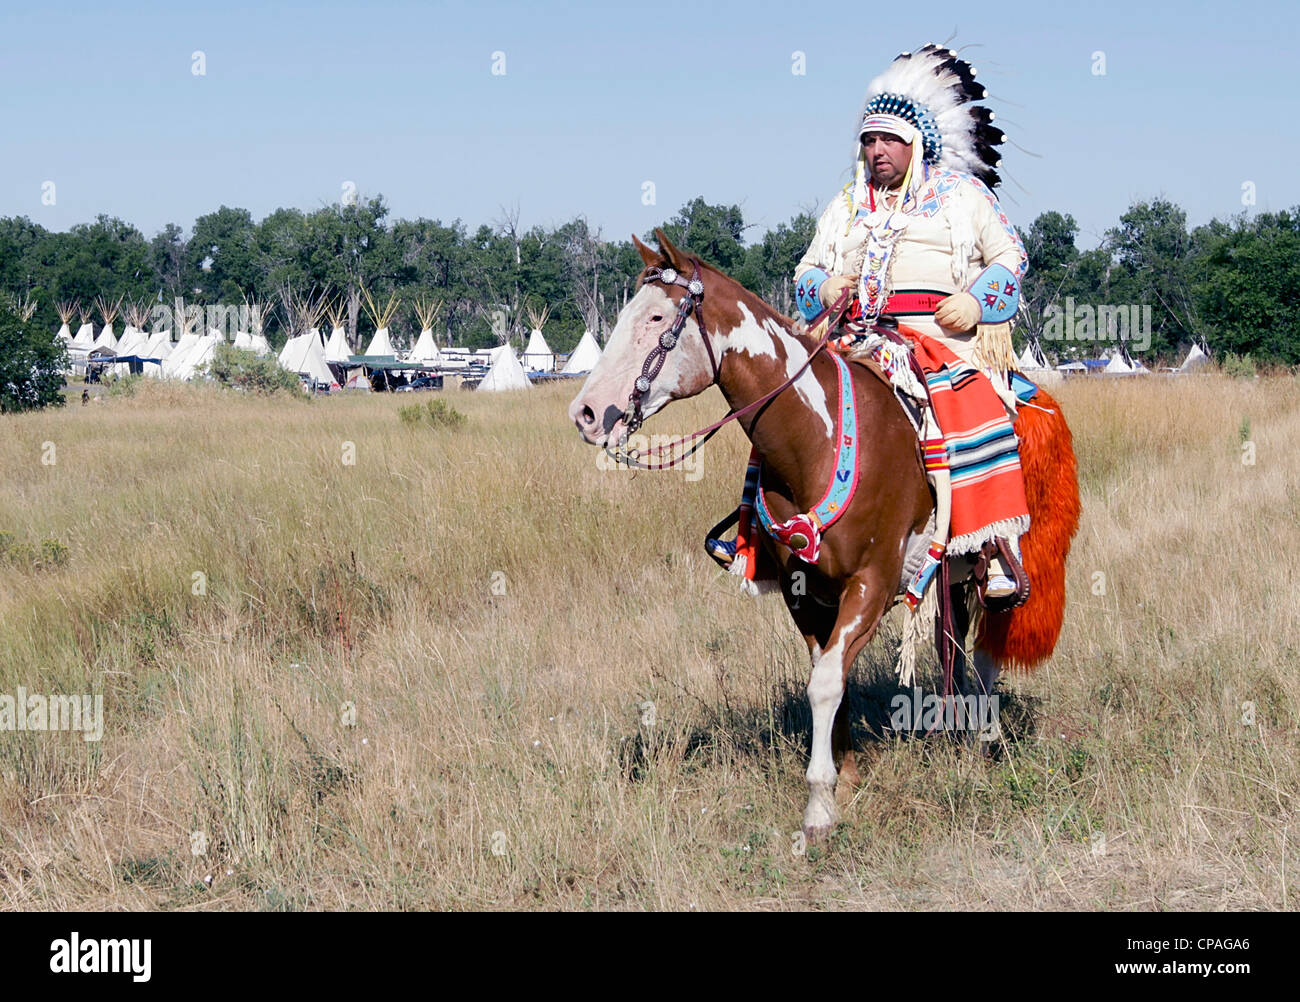 USA, Montana, Crow Agency. Crow chief, in full regalia wearing a war bonnet, during annual Crow Fair in Crow Agency, - Stock Image